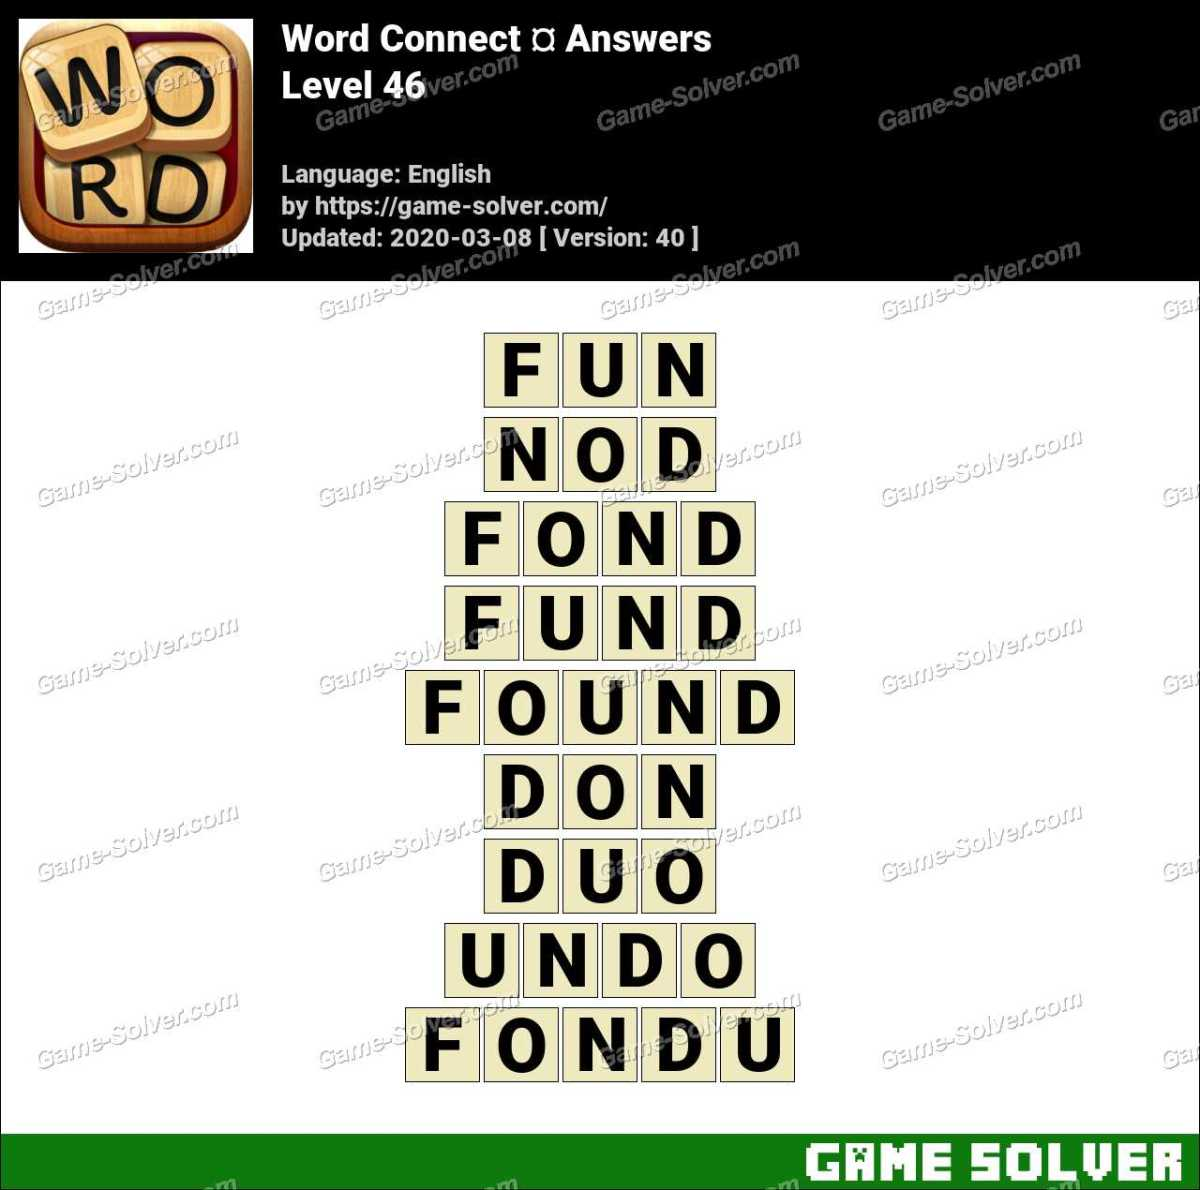 Word Connect Level 46 Answers